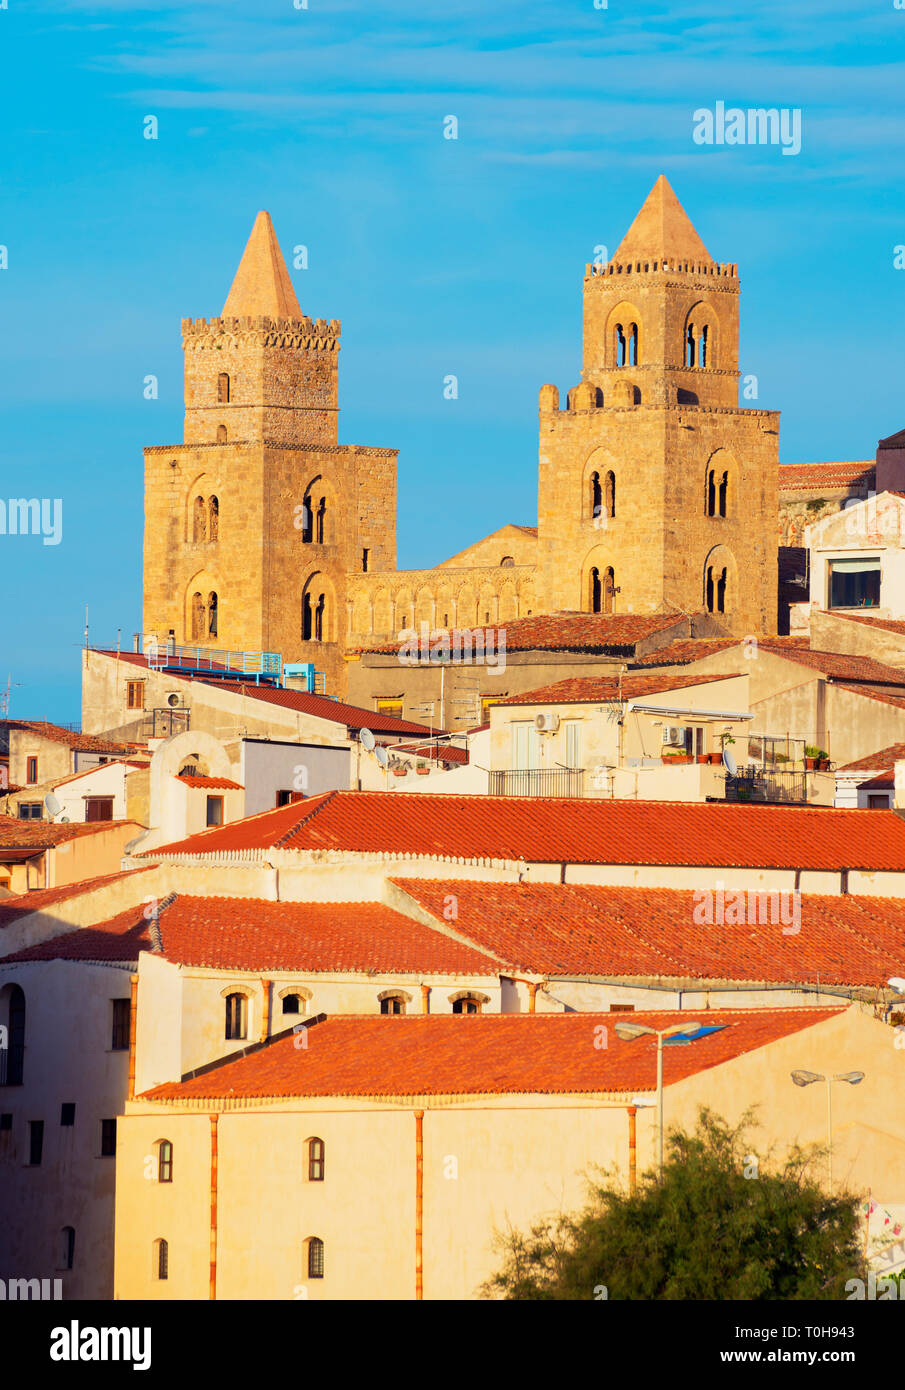 View of San Salvatore Cathedral and Cefalu historic discrict, , Cefalu, Sicily, Italy, Europe - Stock Image